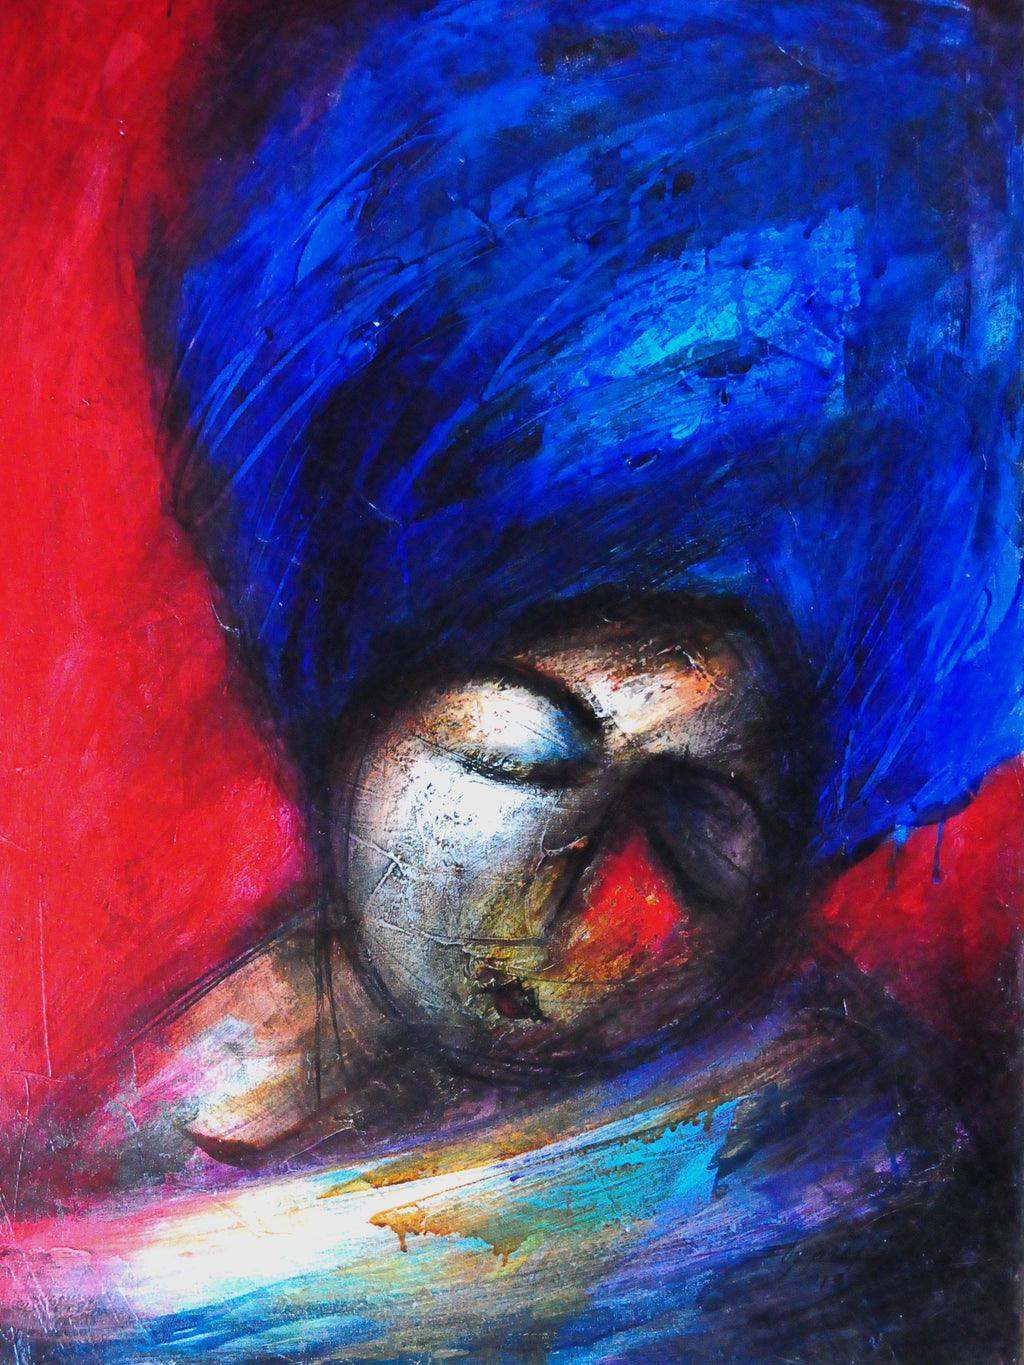 Yasiel Elizagaray AZUL DE TUS OJOS  Cubanocanadian Cuban Art for Sale